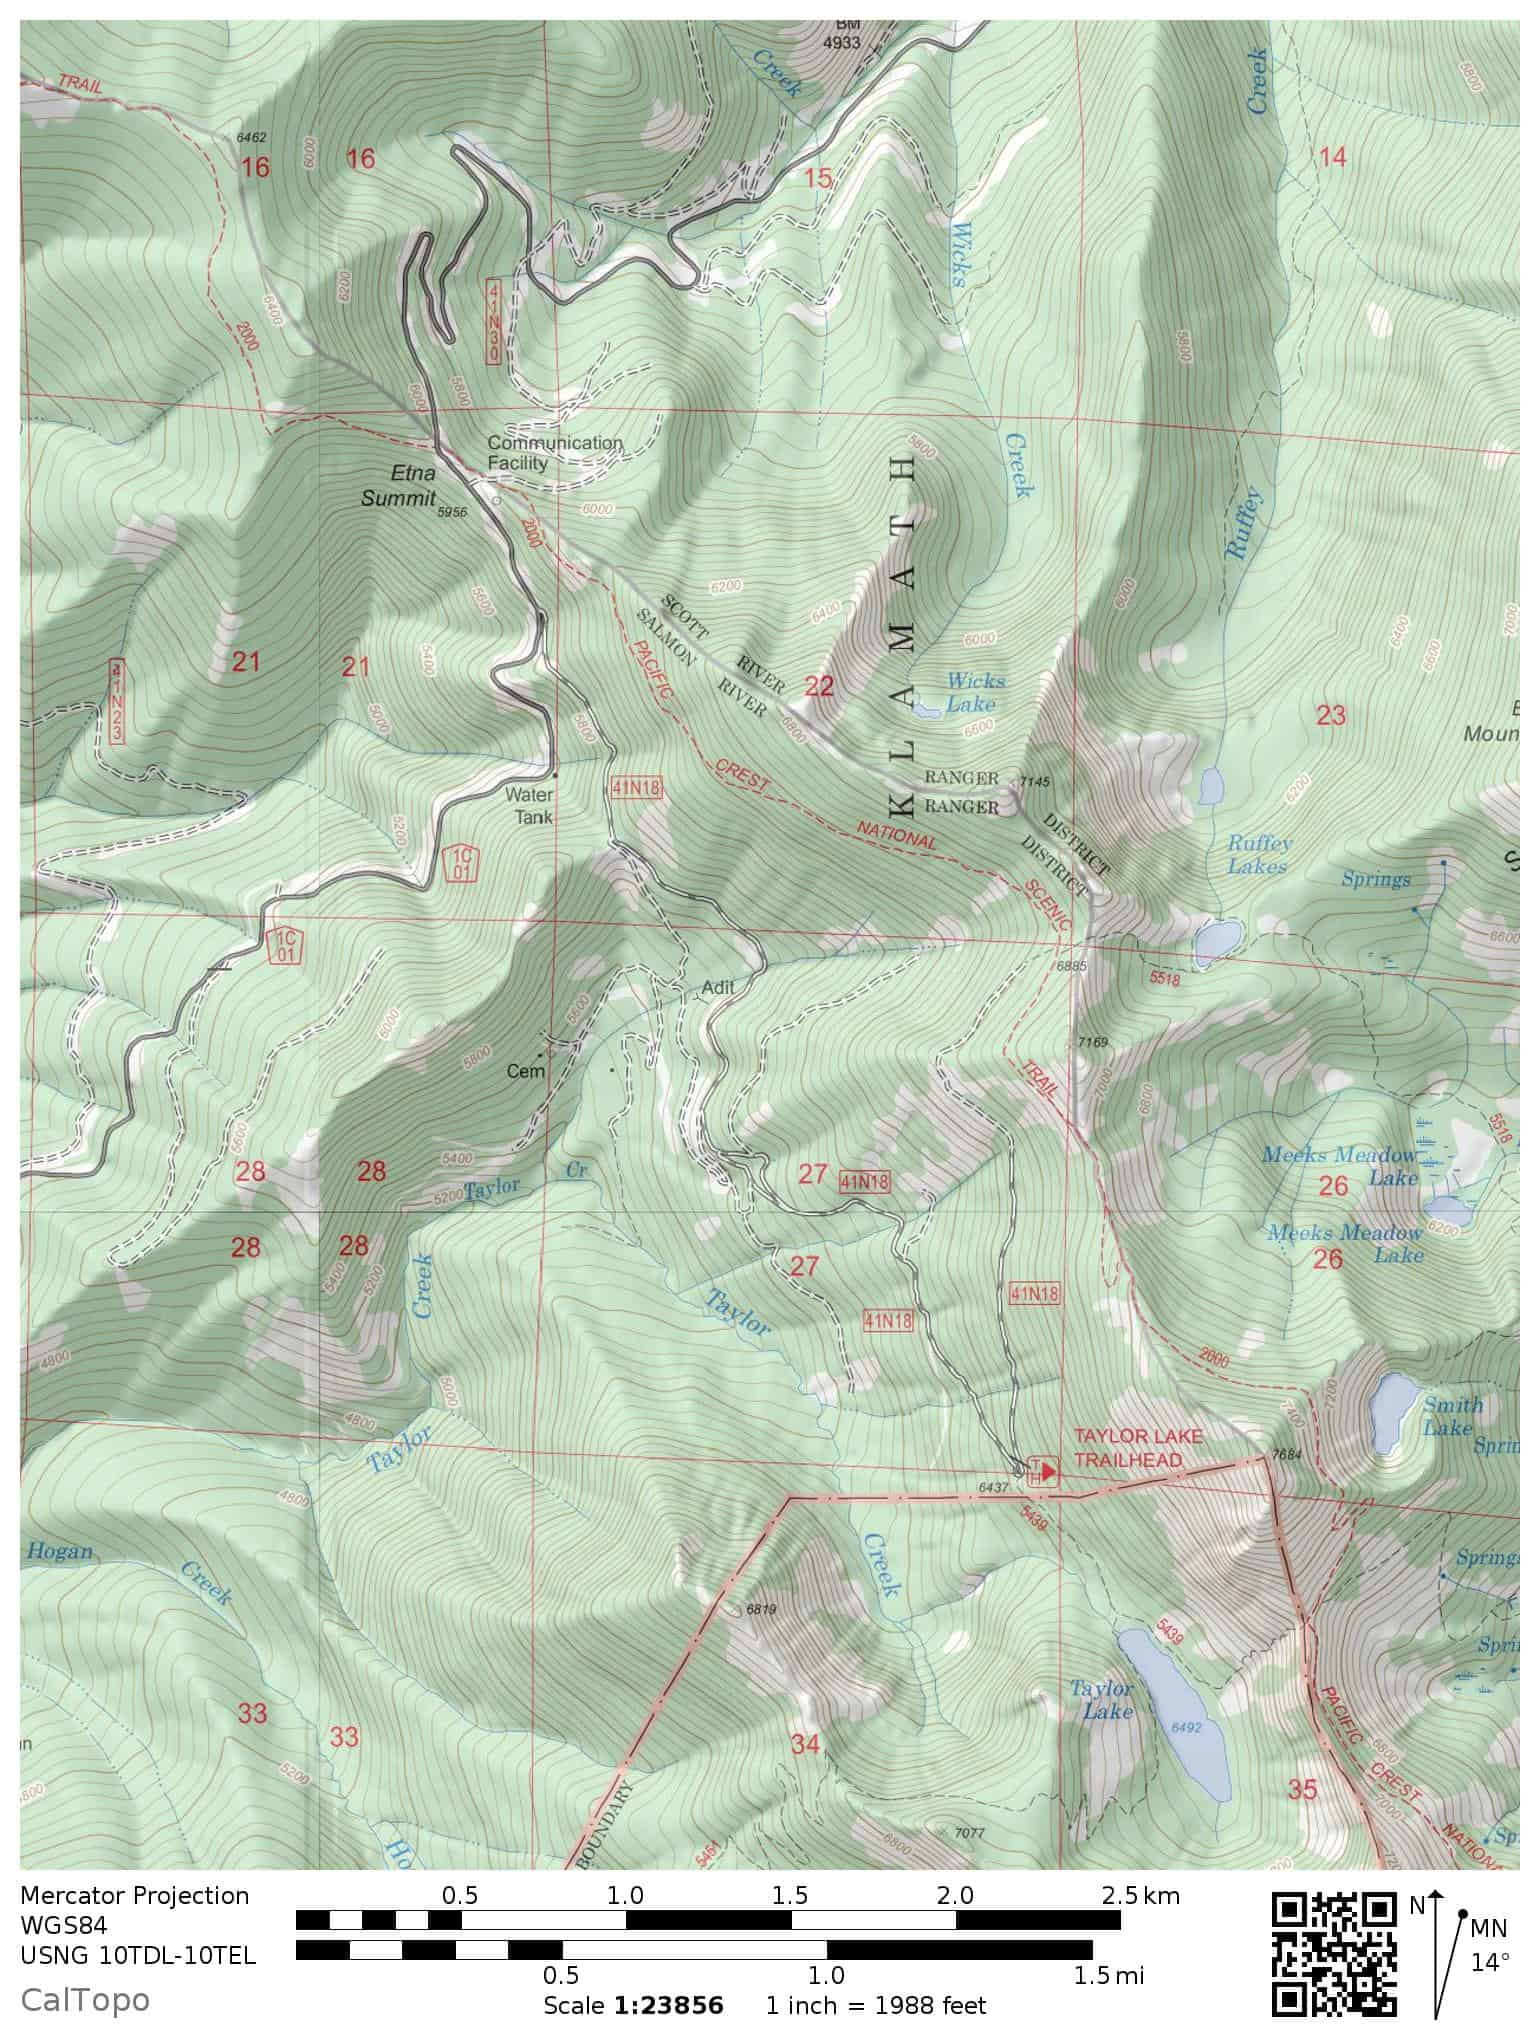 This map shows Etna Summit, Sawyers Bar Road, the Pacific Crest Trail, plus trails and lakes in the nearby Russian Wilderness and Klamath National Forest.